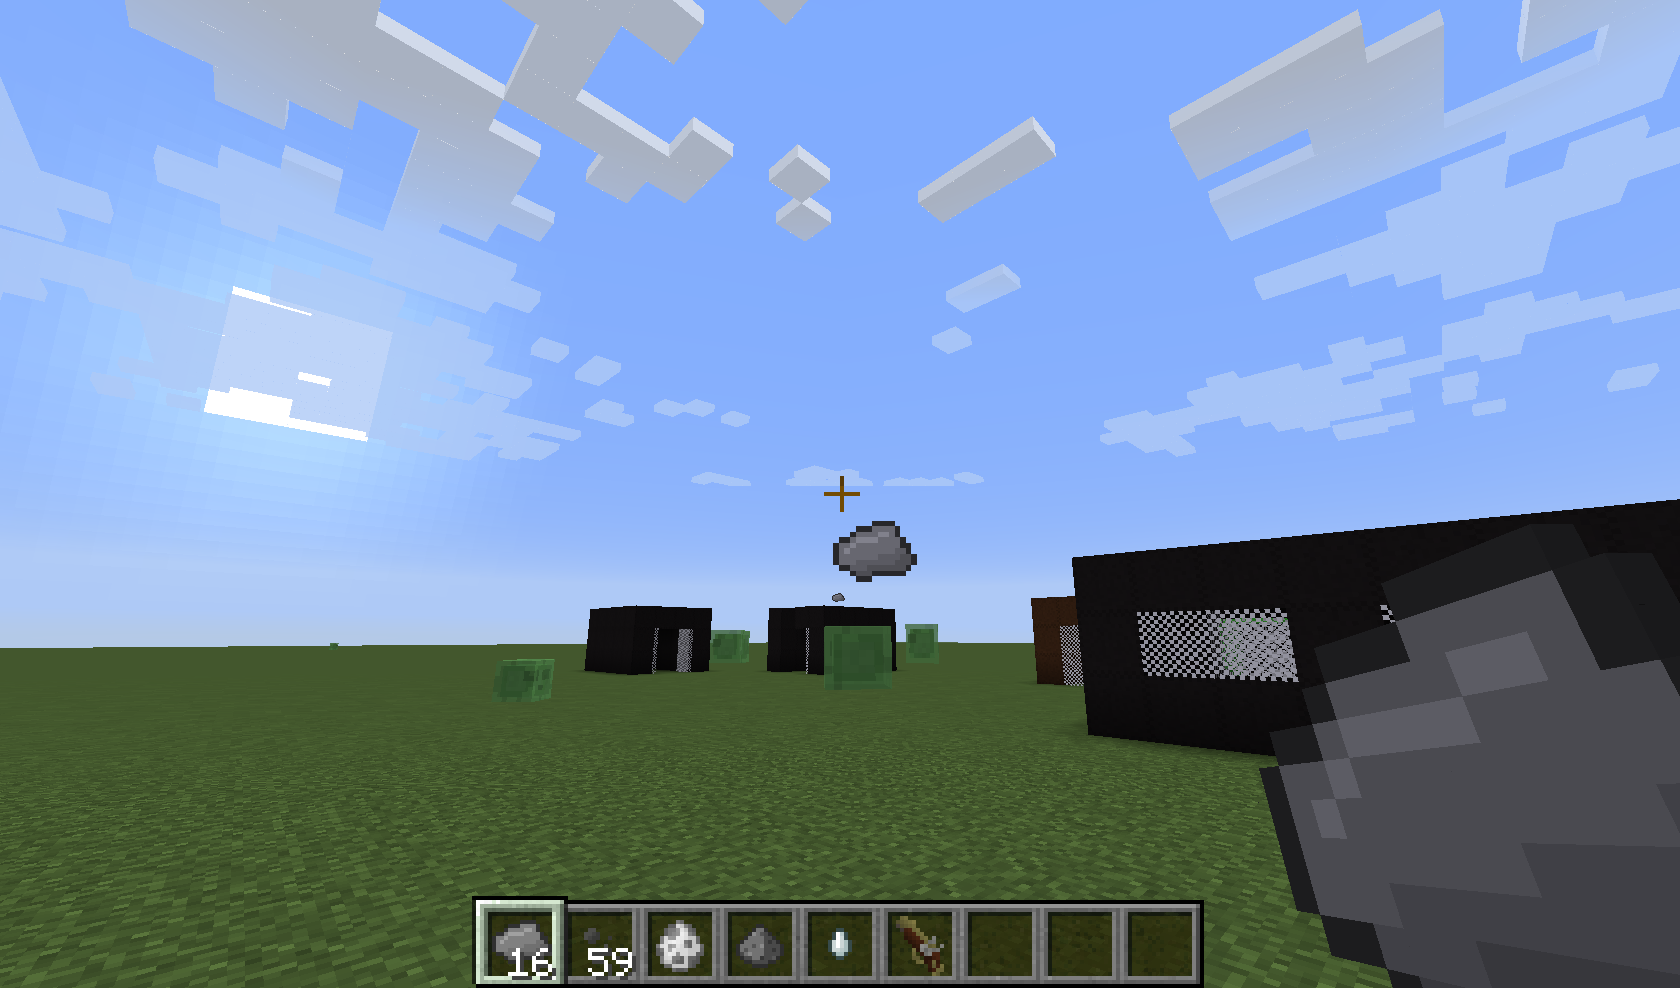 http://minecraft-forum.net/wp-content/uploads/2013/01/7c1dc__Throwing-Stones-Mod-1.png